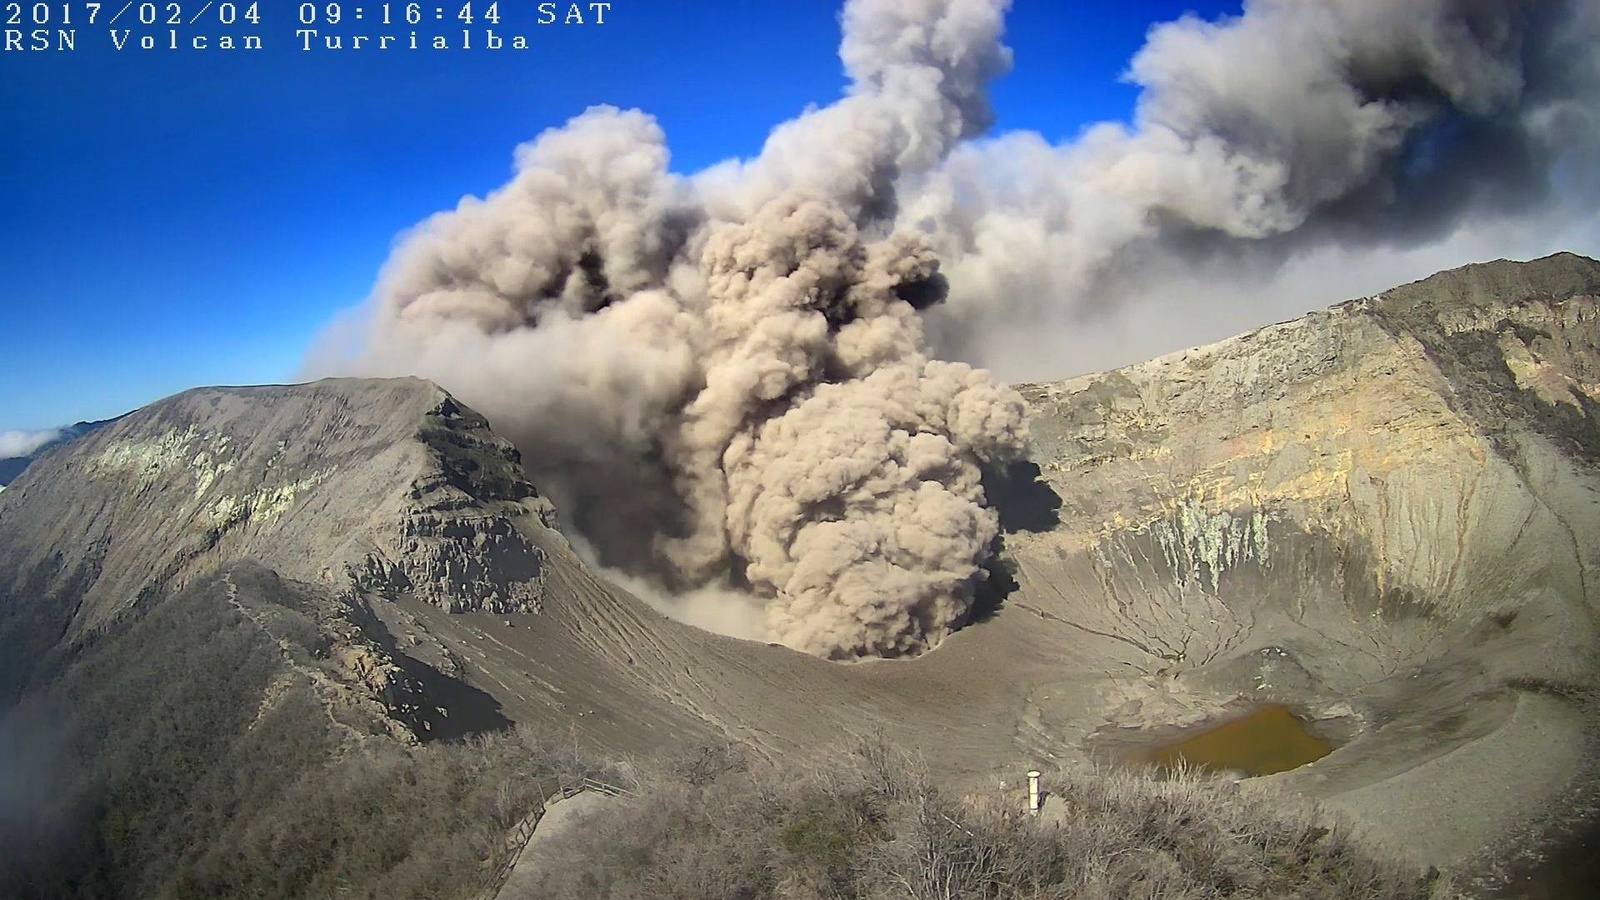 The Turrialba volcano in Costa Rica is experiencing an enhanced activity since February 2, 2017